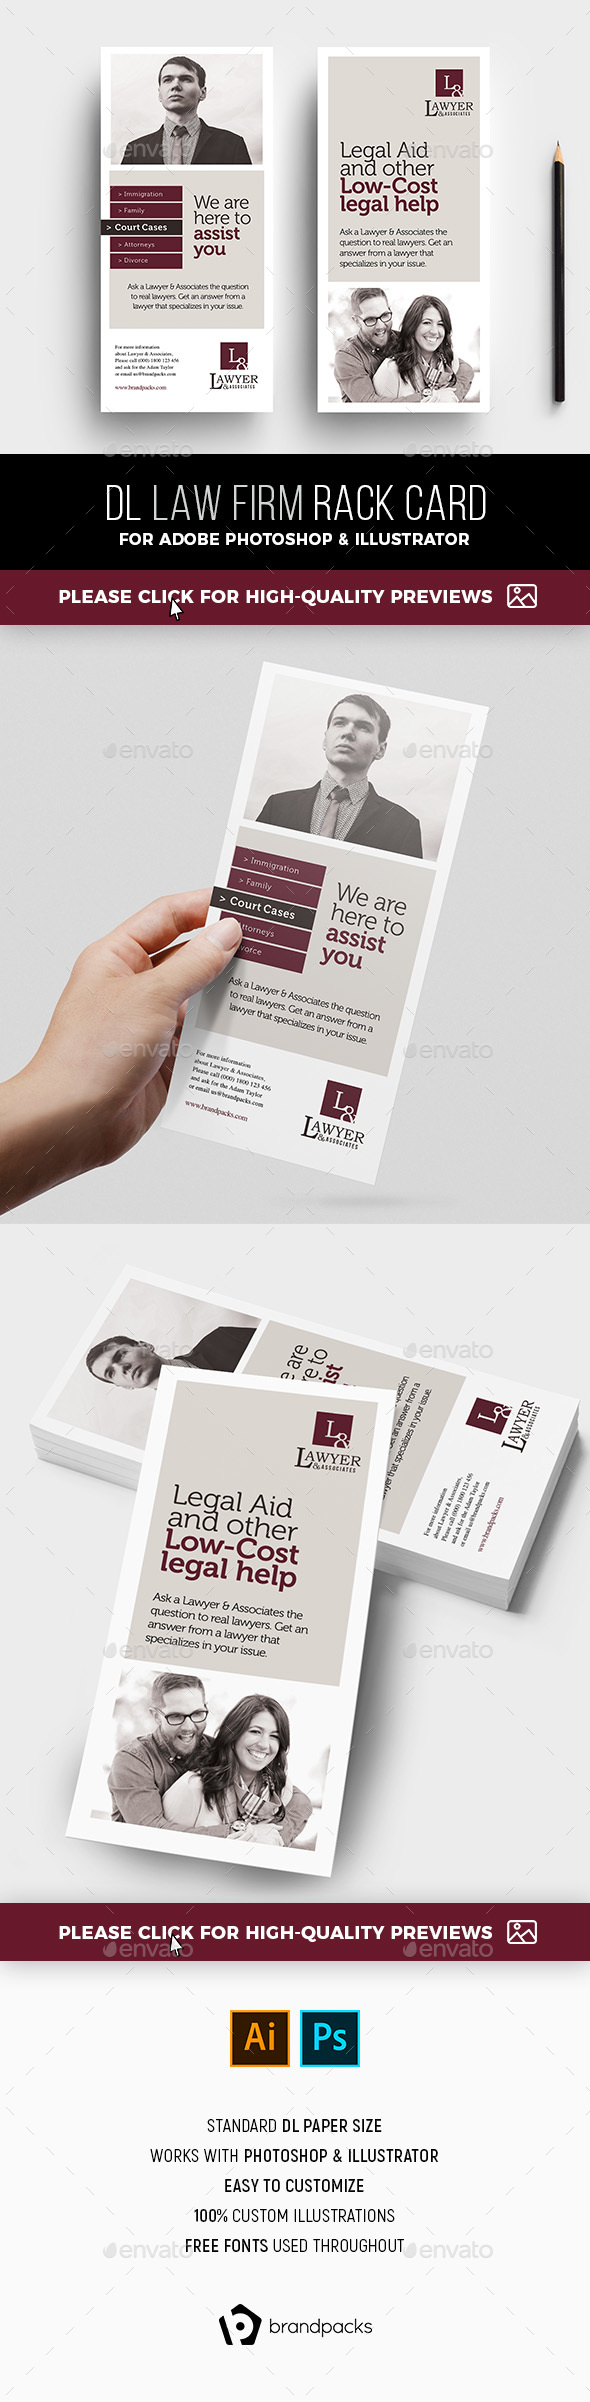 Law Firm Rack Card Template - Corporate Flyers